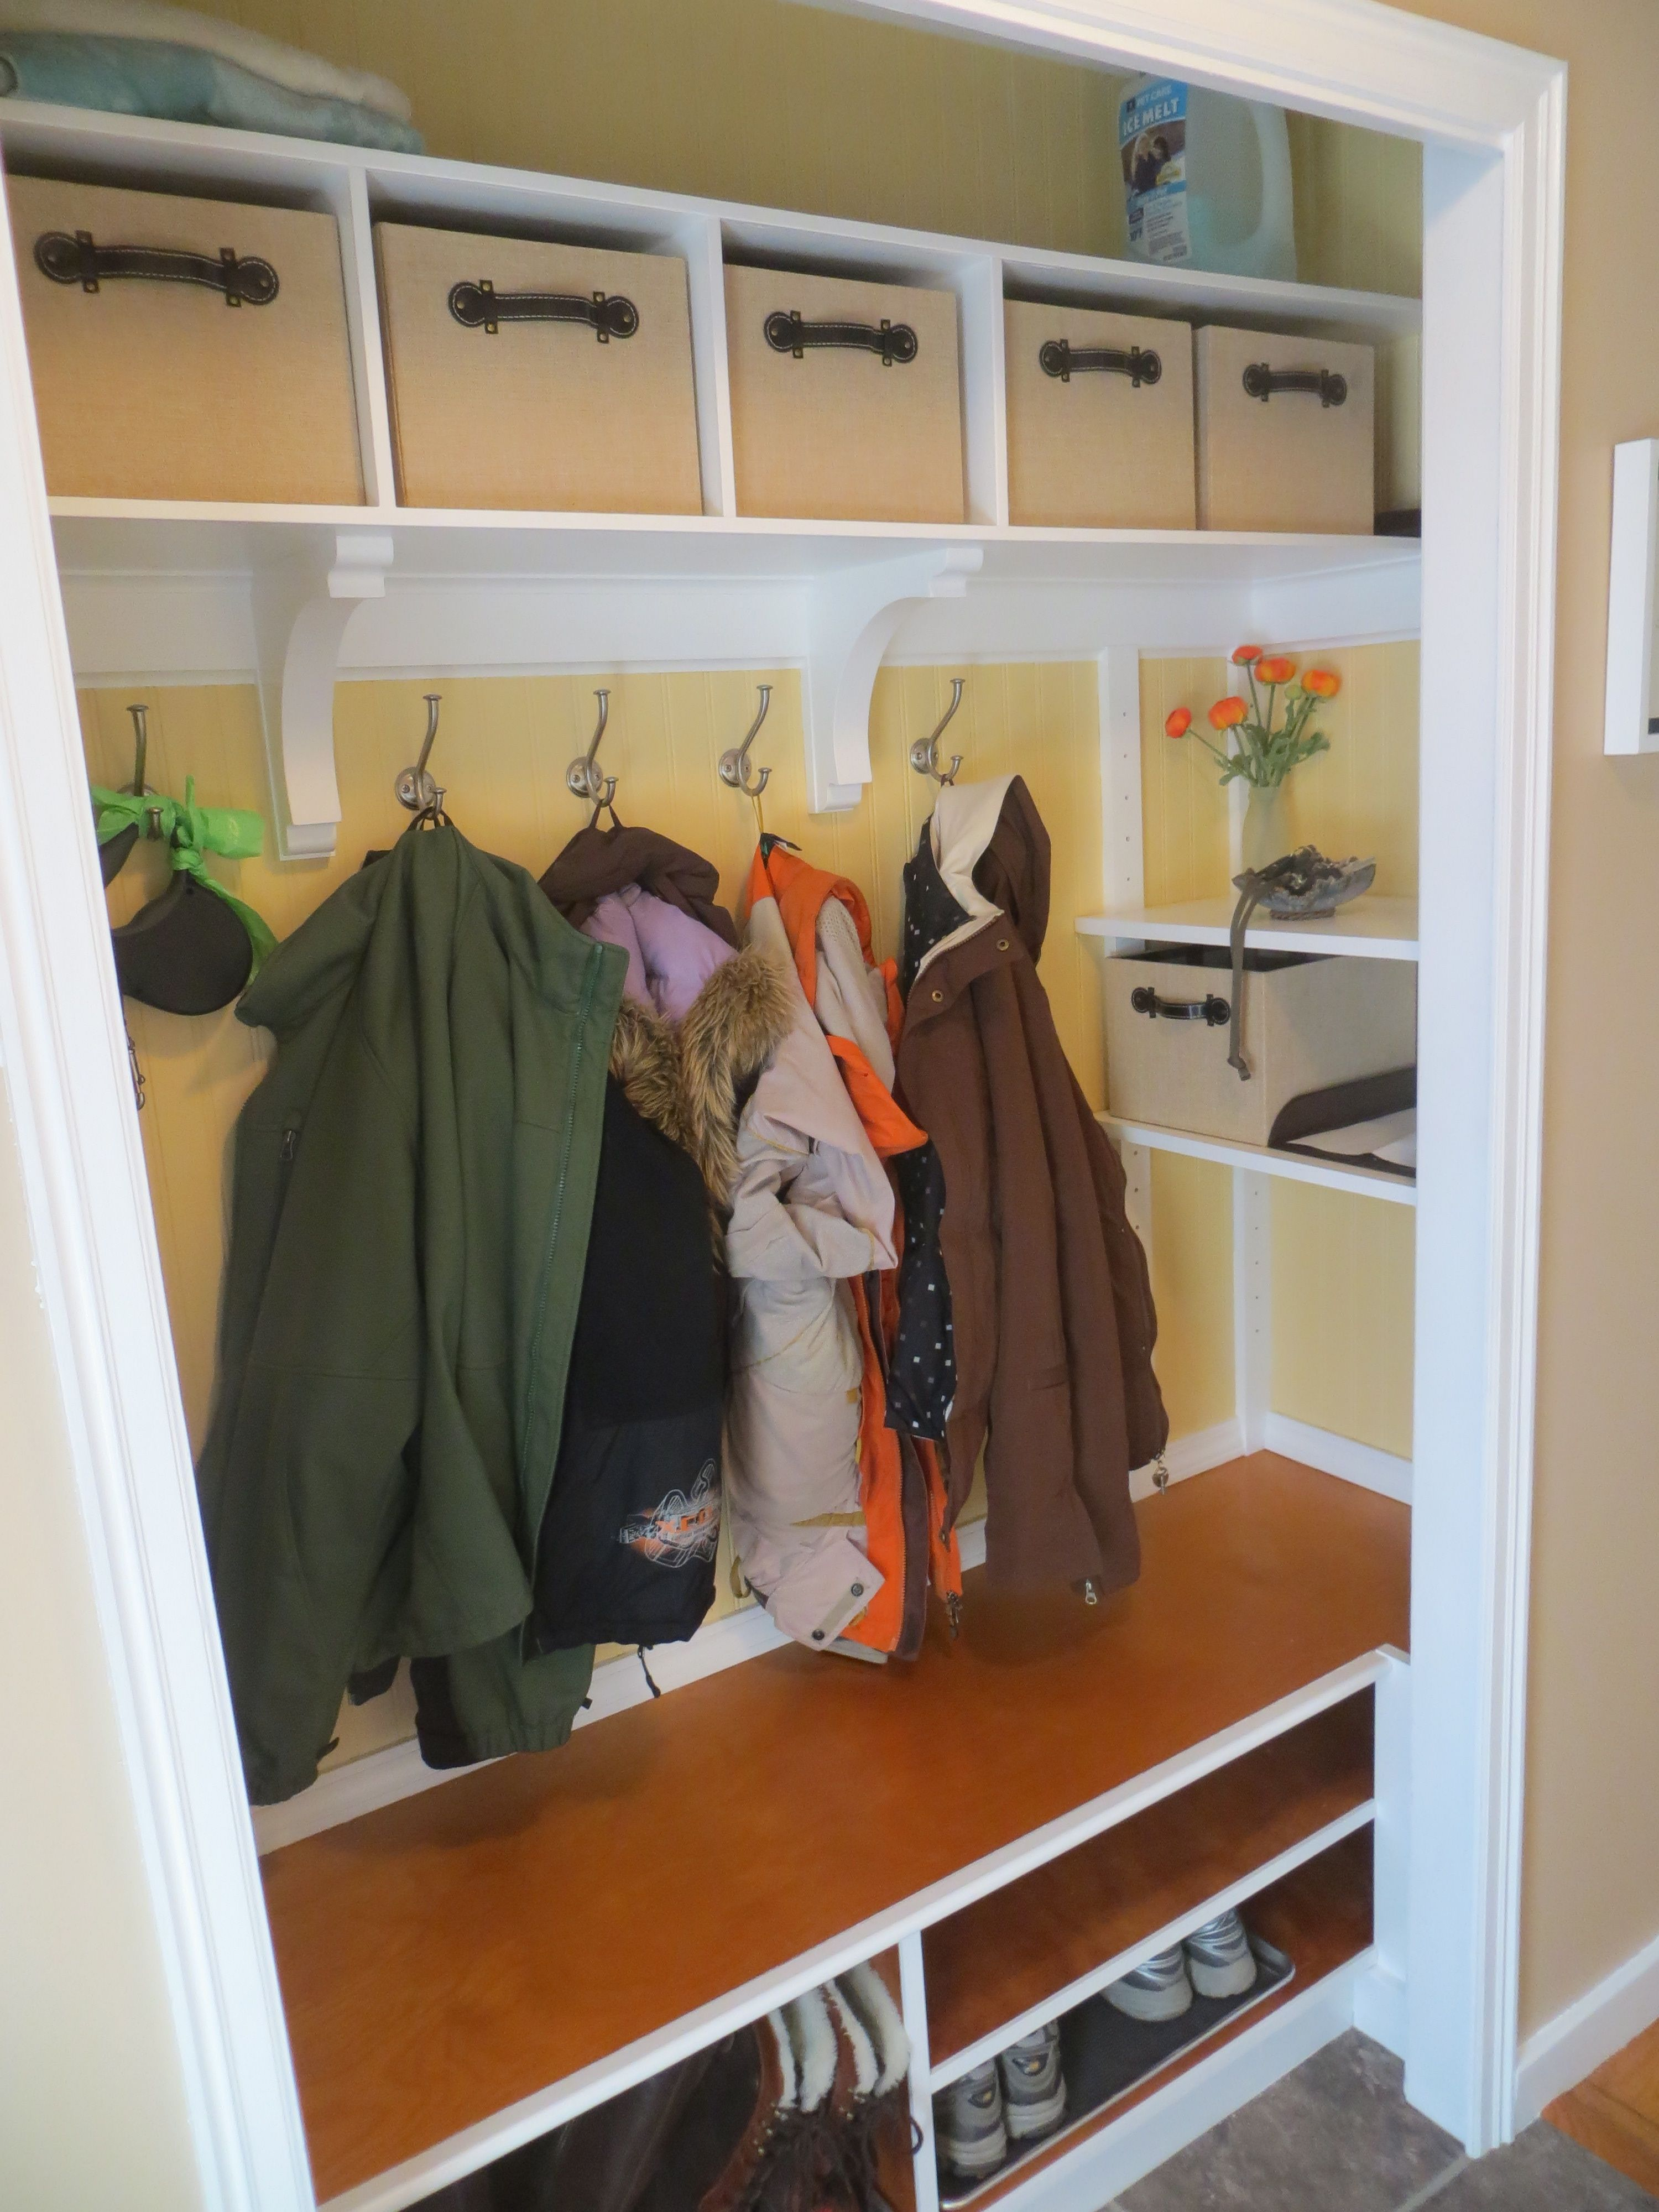 Entry Closet · Almost Exactly What We Want! (Only Ours Would Be Smaller...)